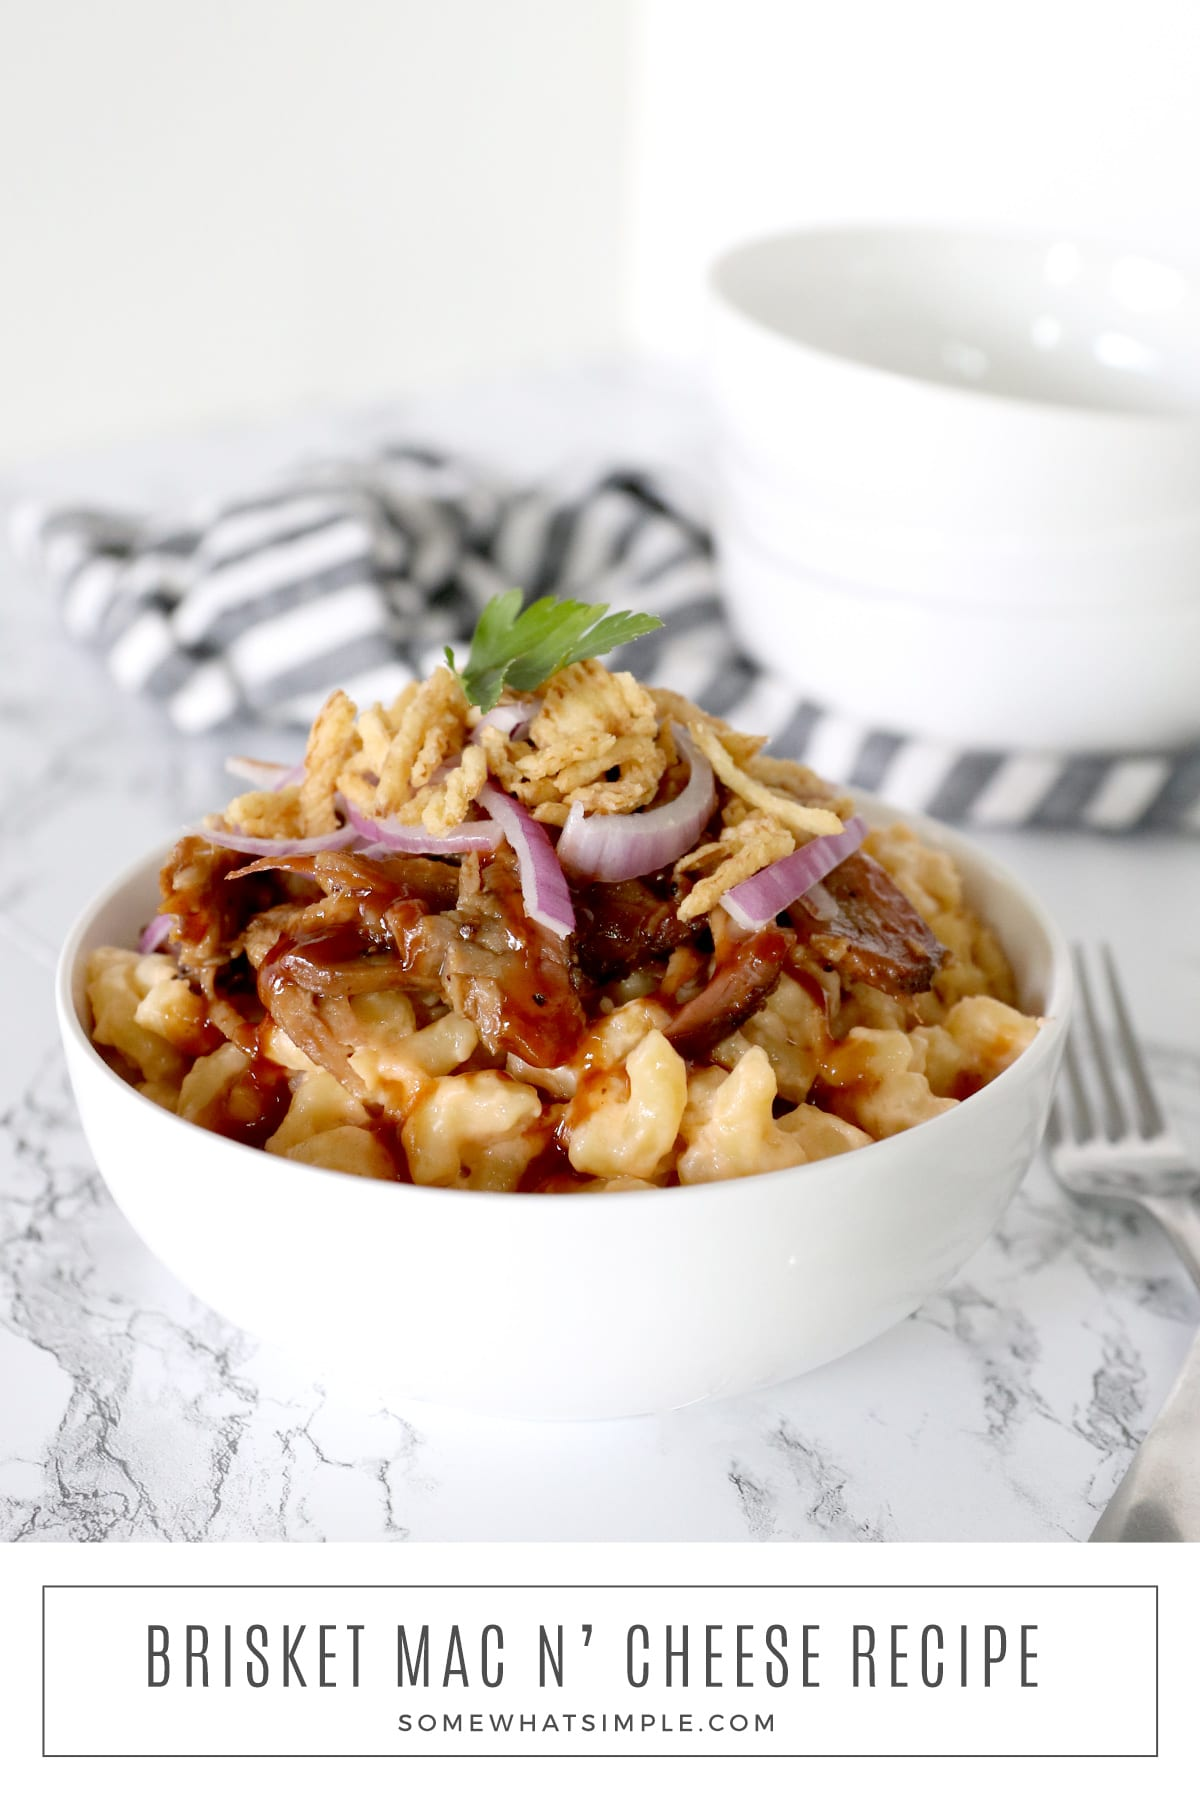 Creamy, cheesy macaroni topped with barbecue brisket, and crispy french fried onions - this Brisket Mac and Cheese recipe is a delicious crowd-pleaser! via @somewhatsimple